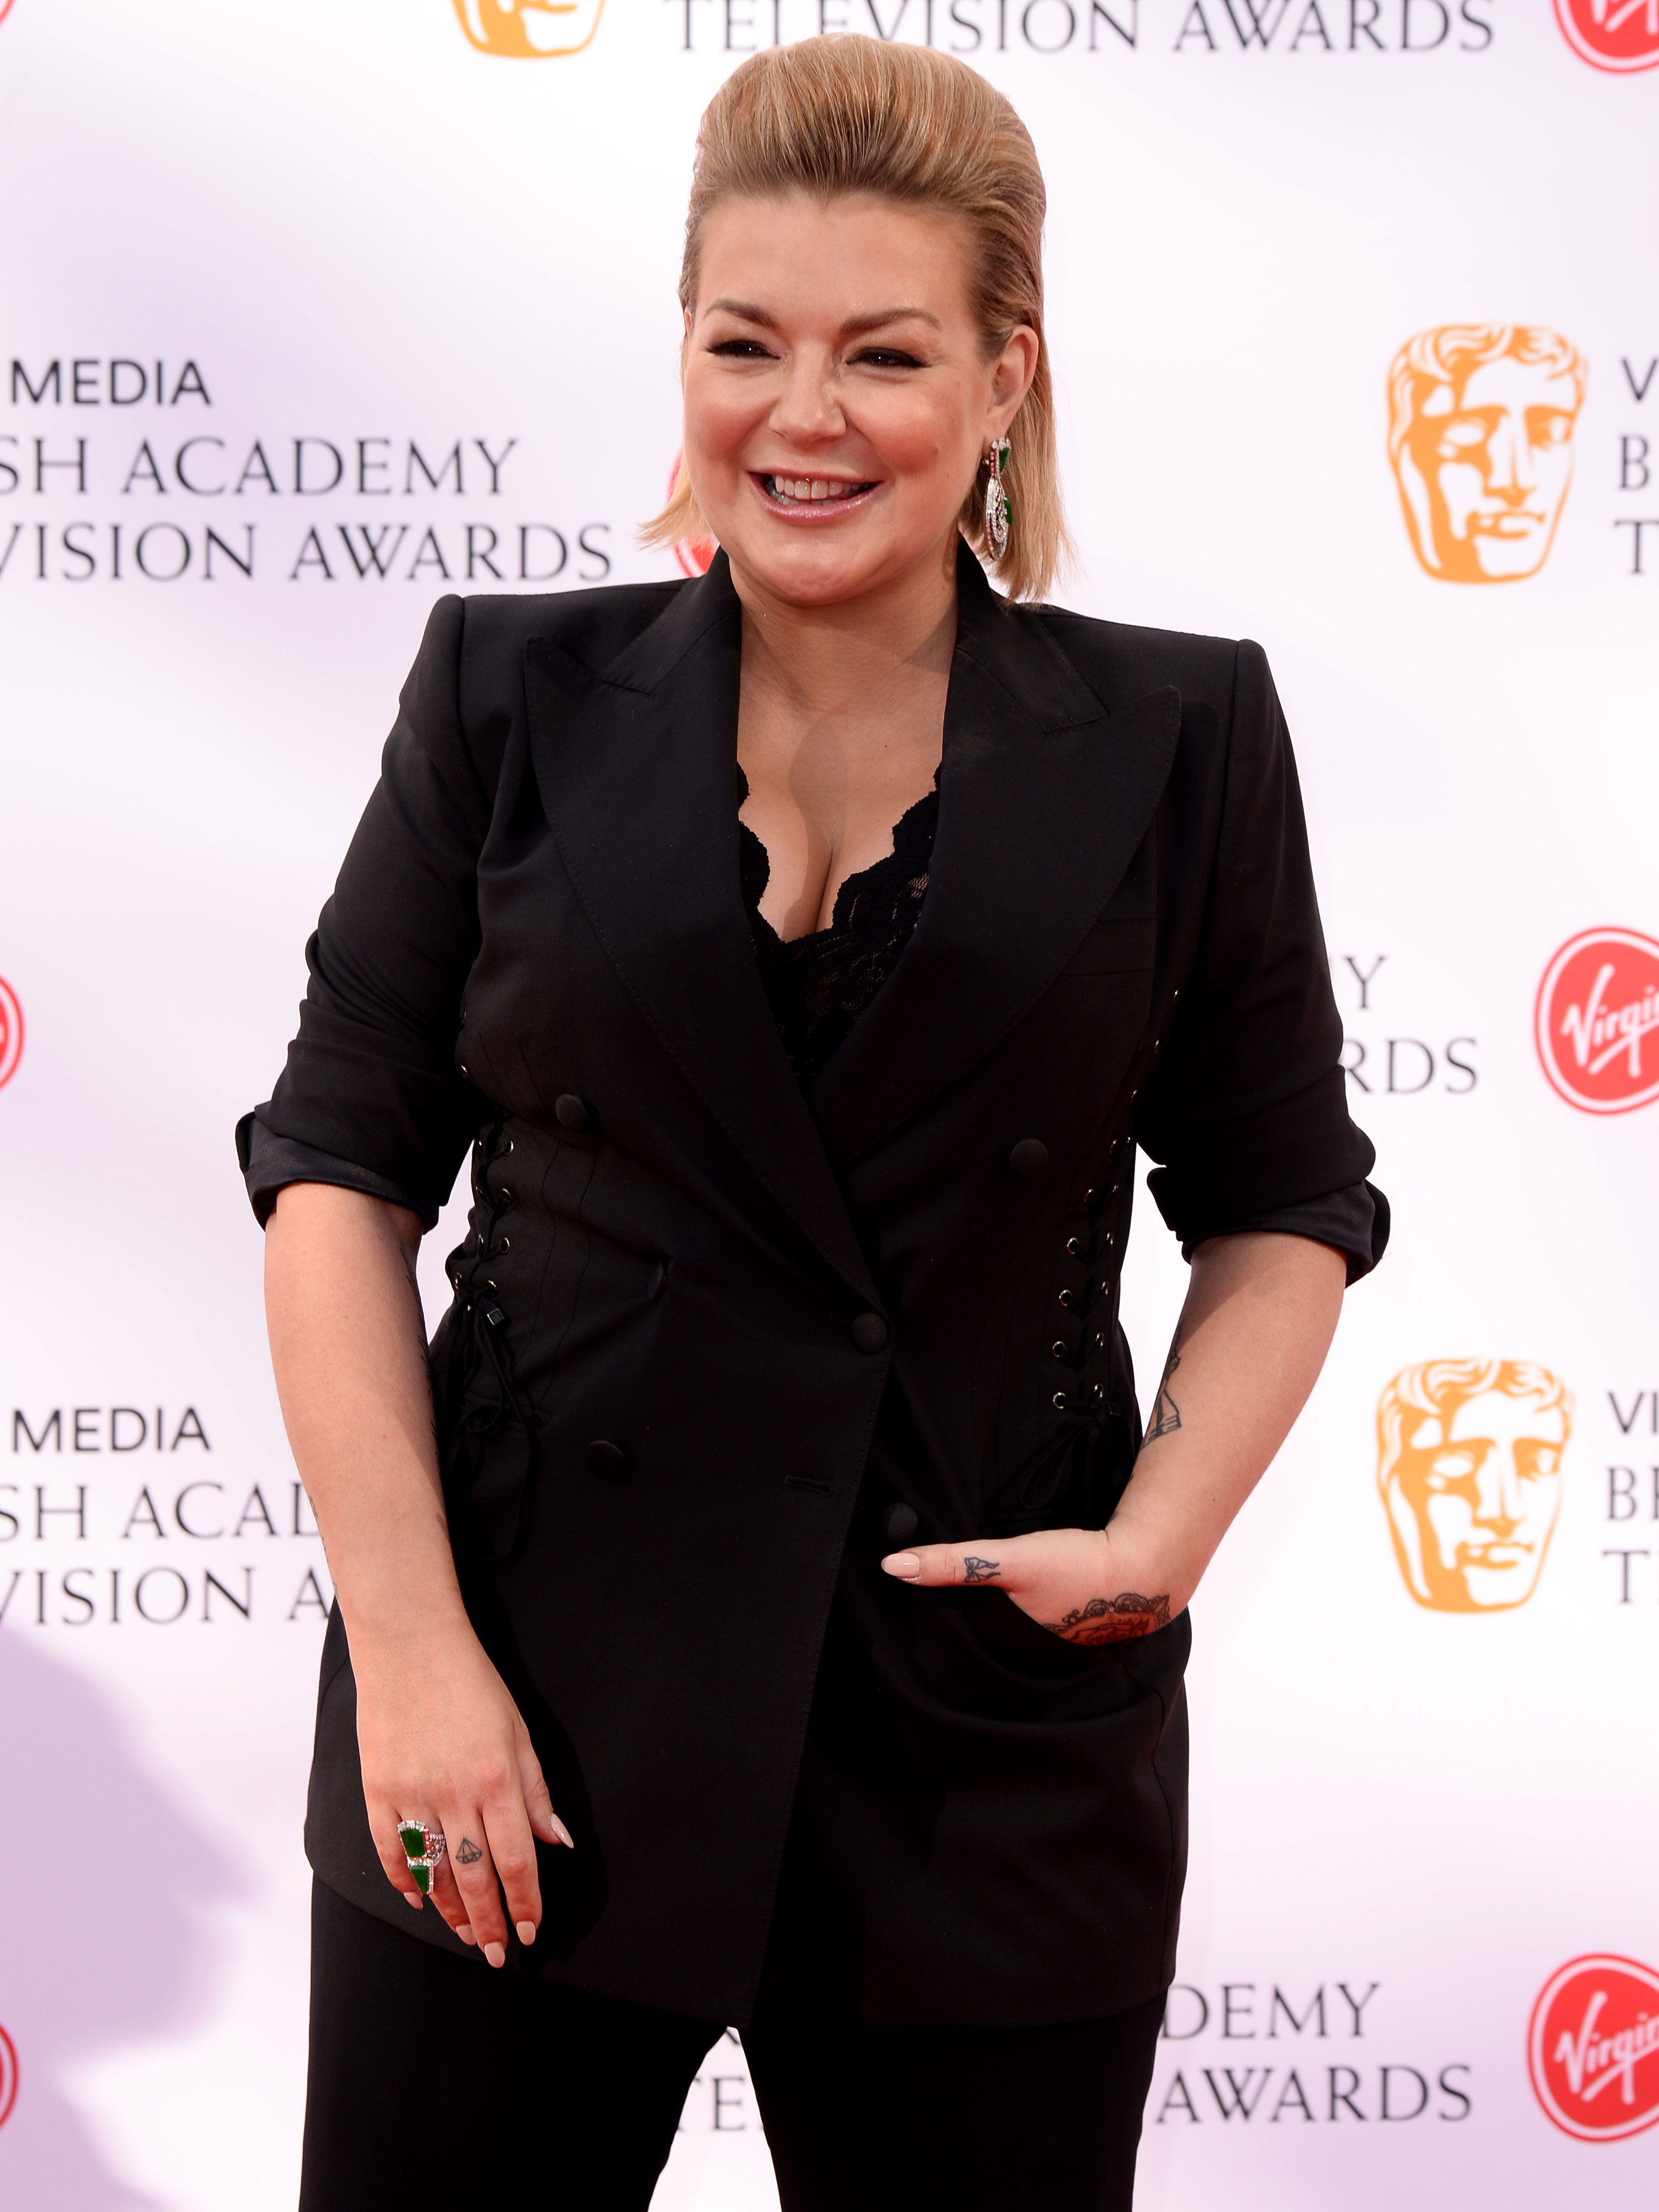 Pregnant Sheridan Smith leaves fans stunned with epic hair transformation